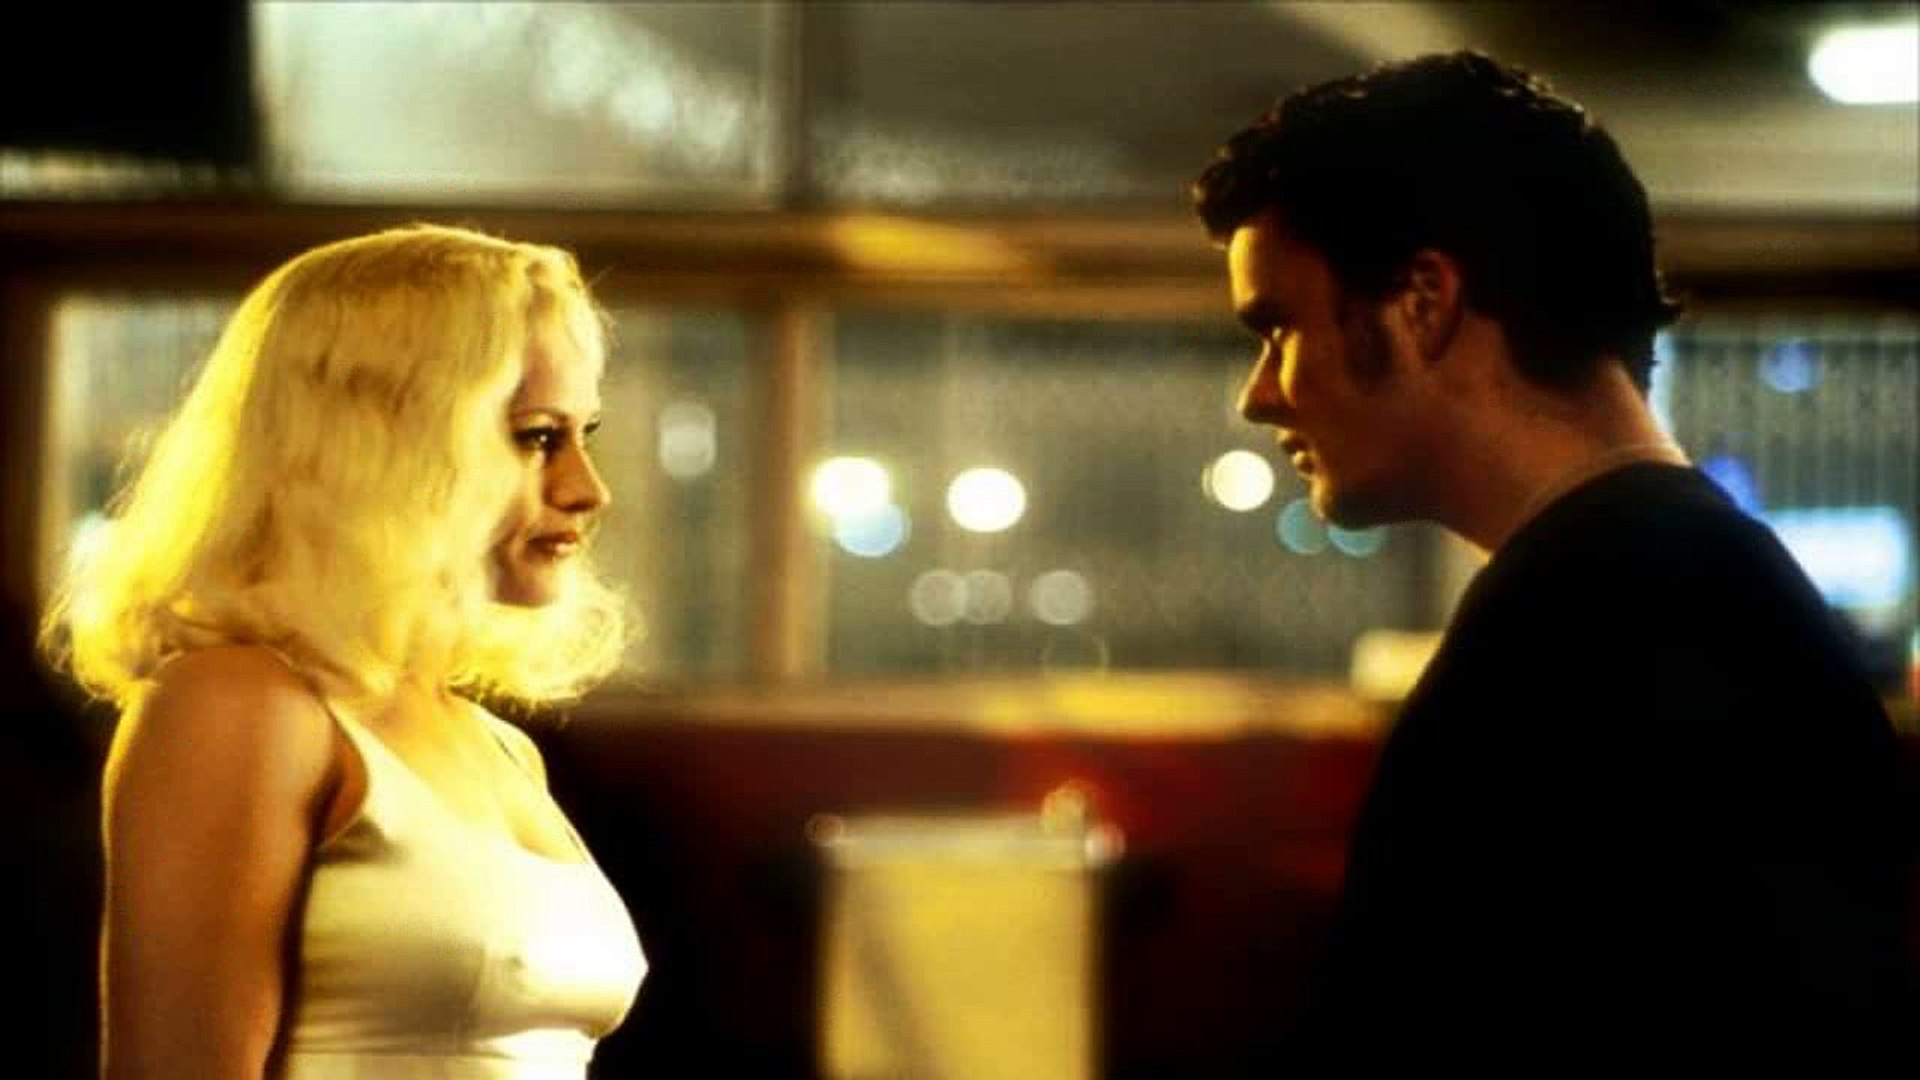 Lost Highway 1997 Full Movie in High Quality 1080p